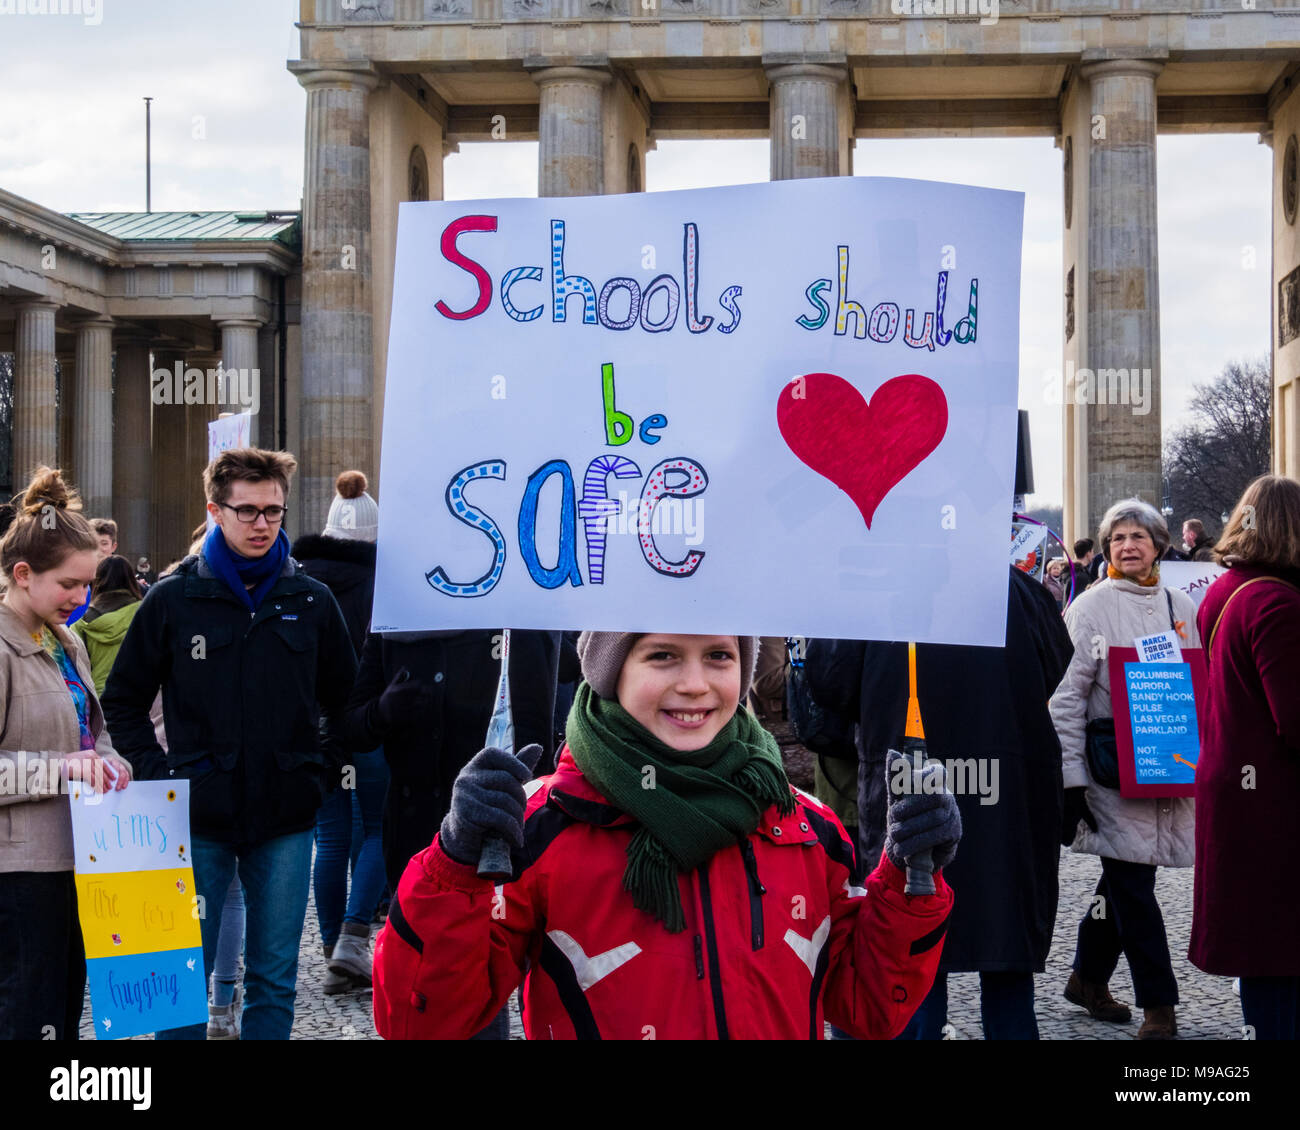 Germany, Berlin-Mitte, Brandenburg Gate, 24th March 2018. Germans and Americans assembled at the Pariser Platz today to show solidarity with the Parkland students and those affected by gun violence. World-wide marches today supported better gun control laws in America. The Berlin demonstration was co-organized by the Democrats Abroad Berlin and American Voices Abroad. Credit: Eden Breitz/Alamy Live News Stock Photo